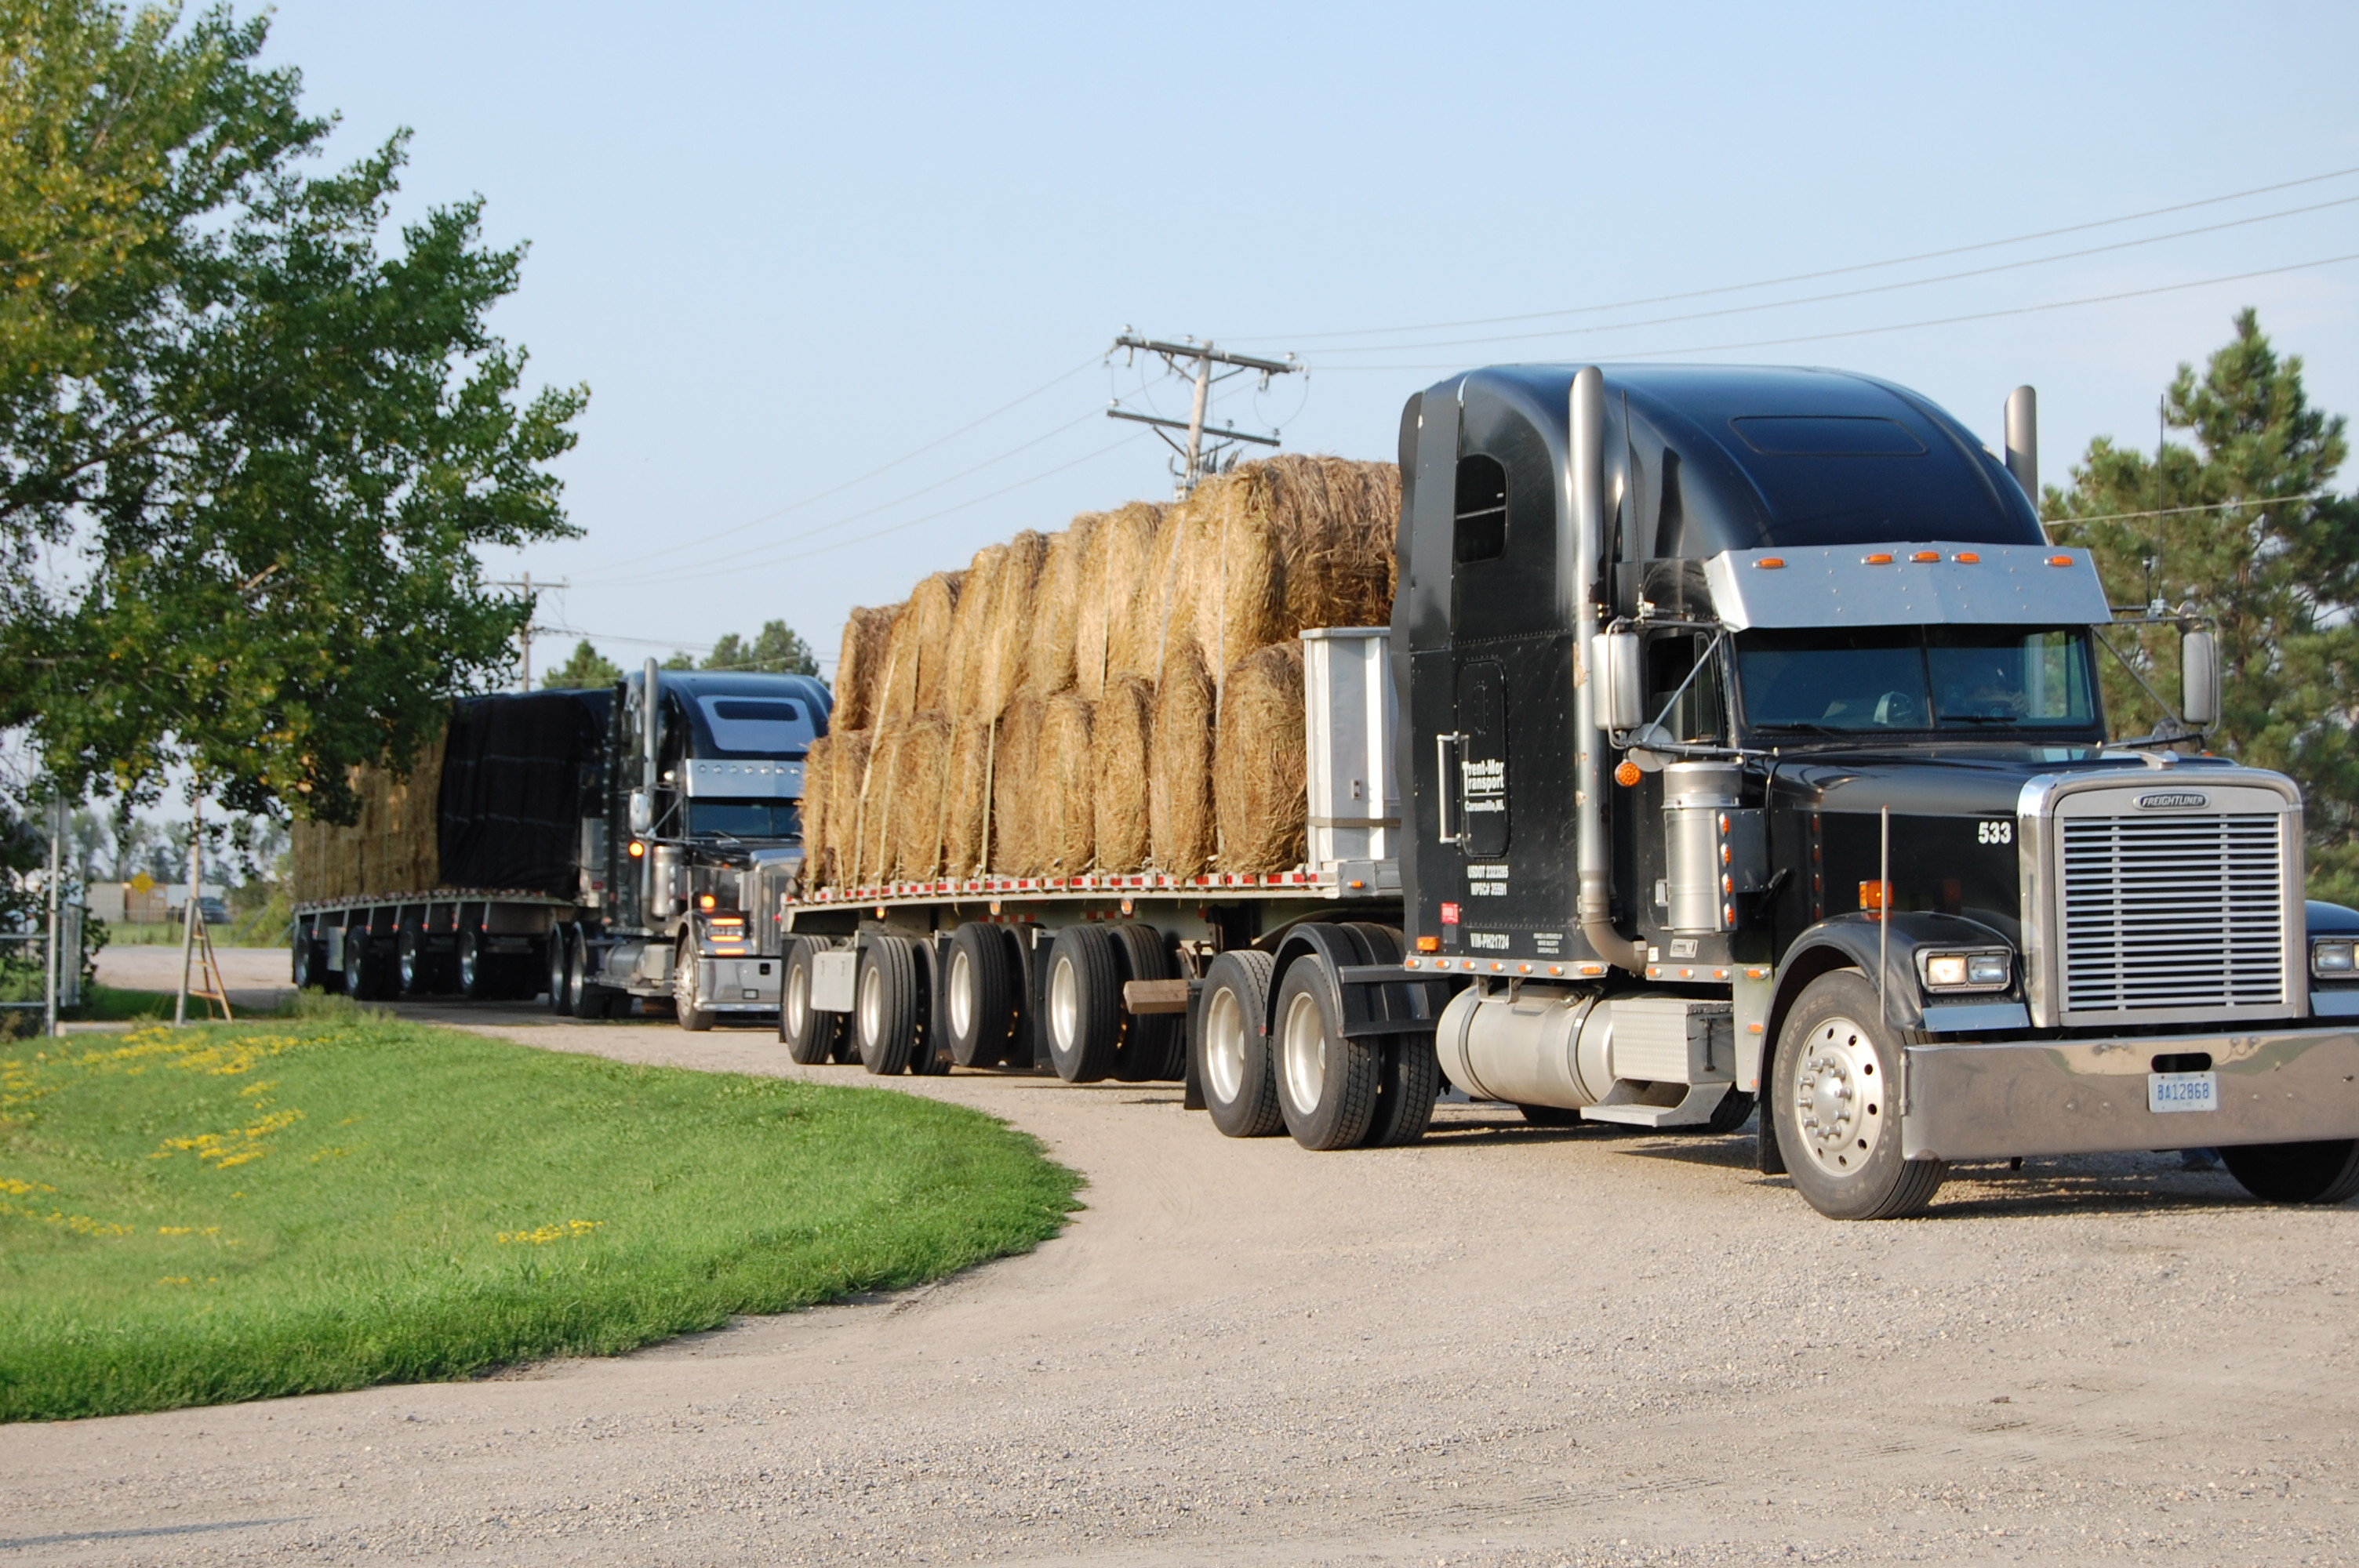 Hay coming into the collection site